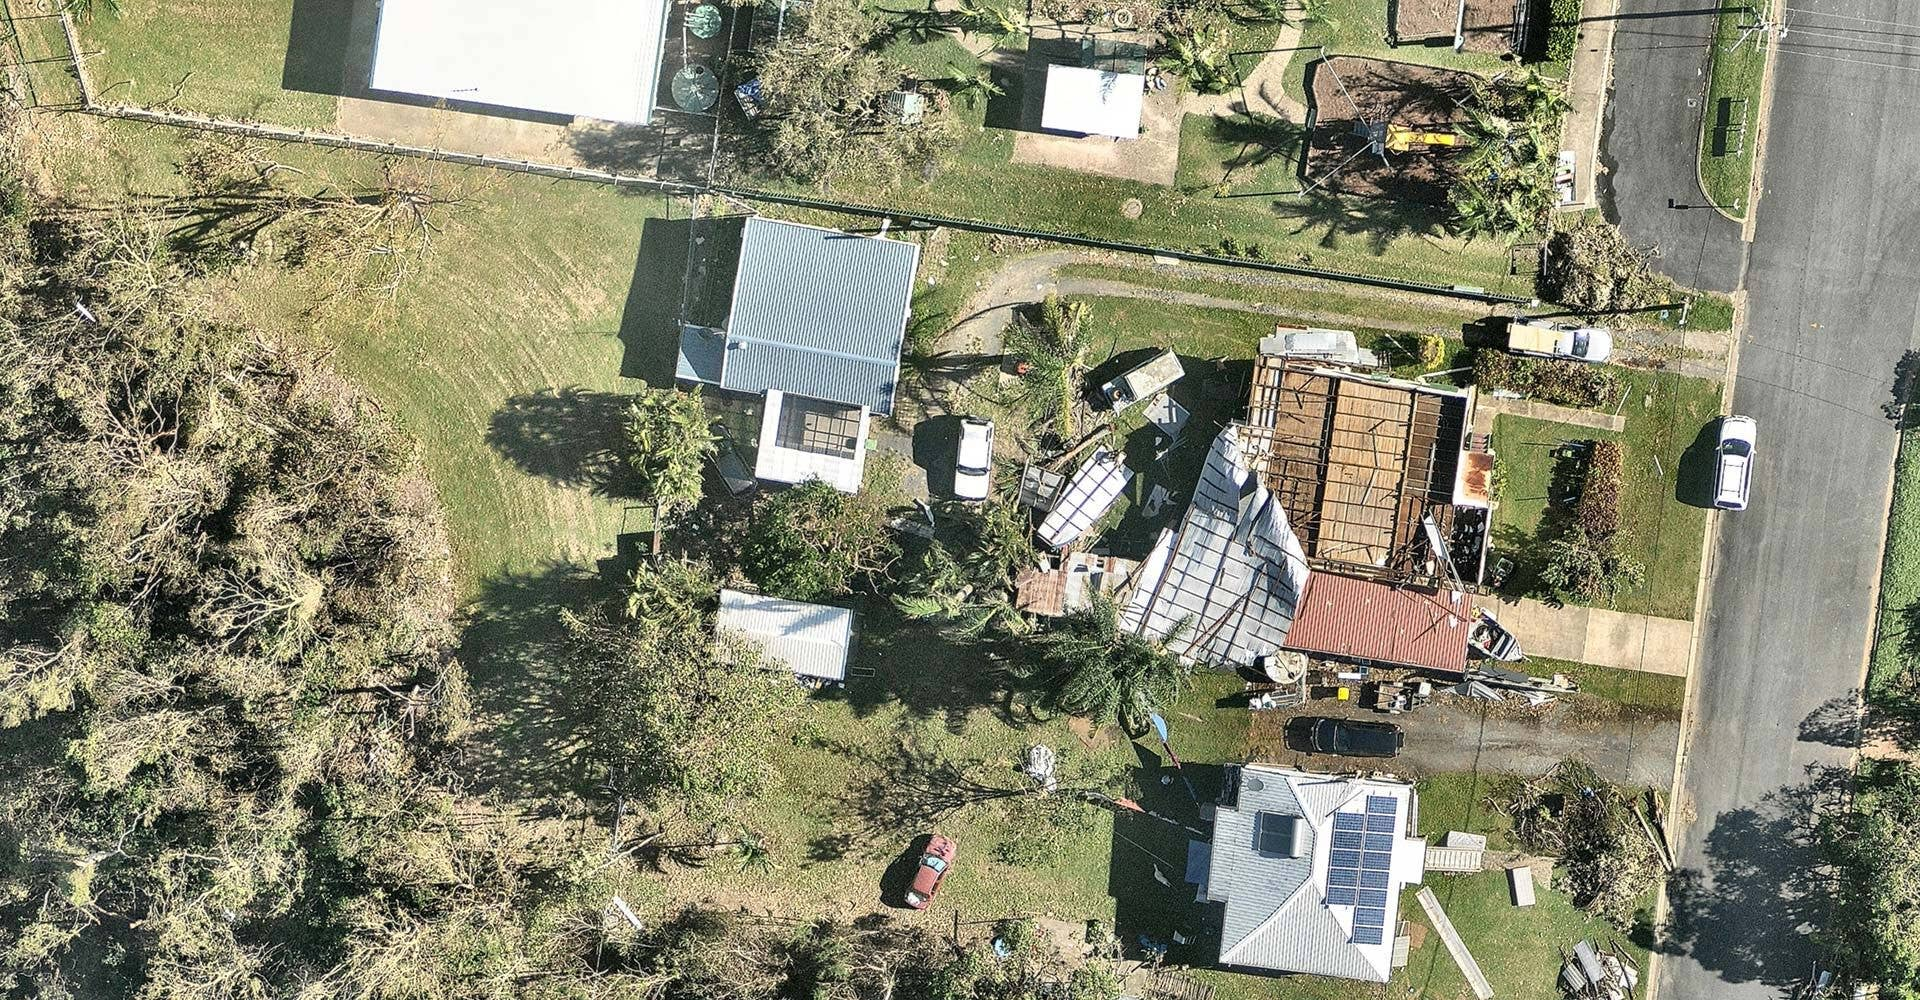 aerial, property, damage, Yeppoon QLD, 2018 February 23